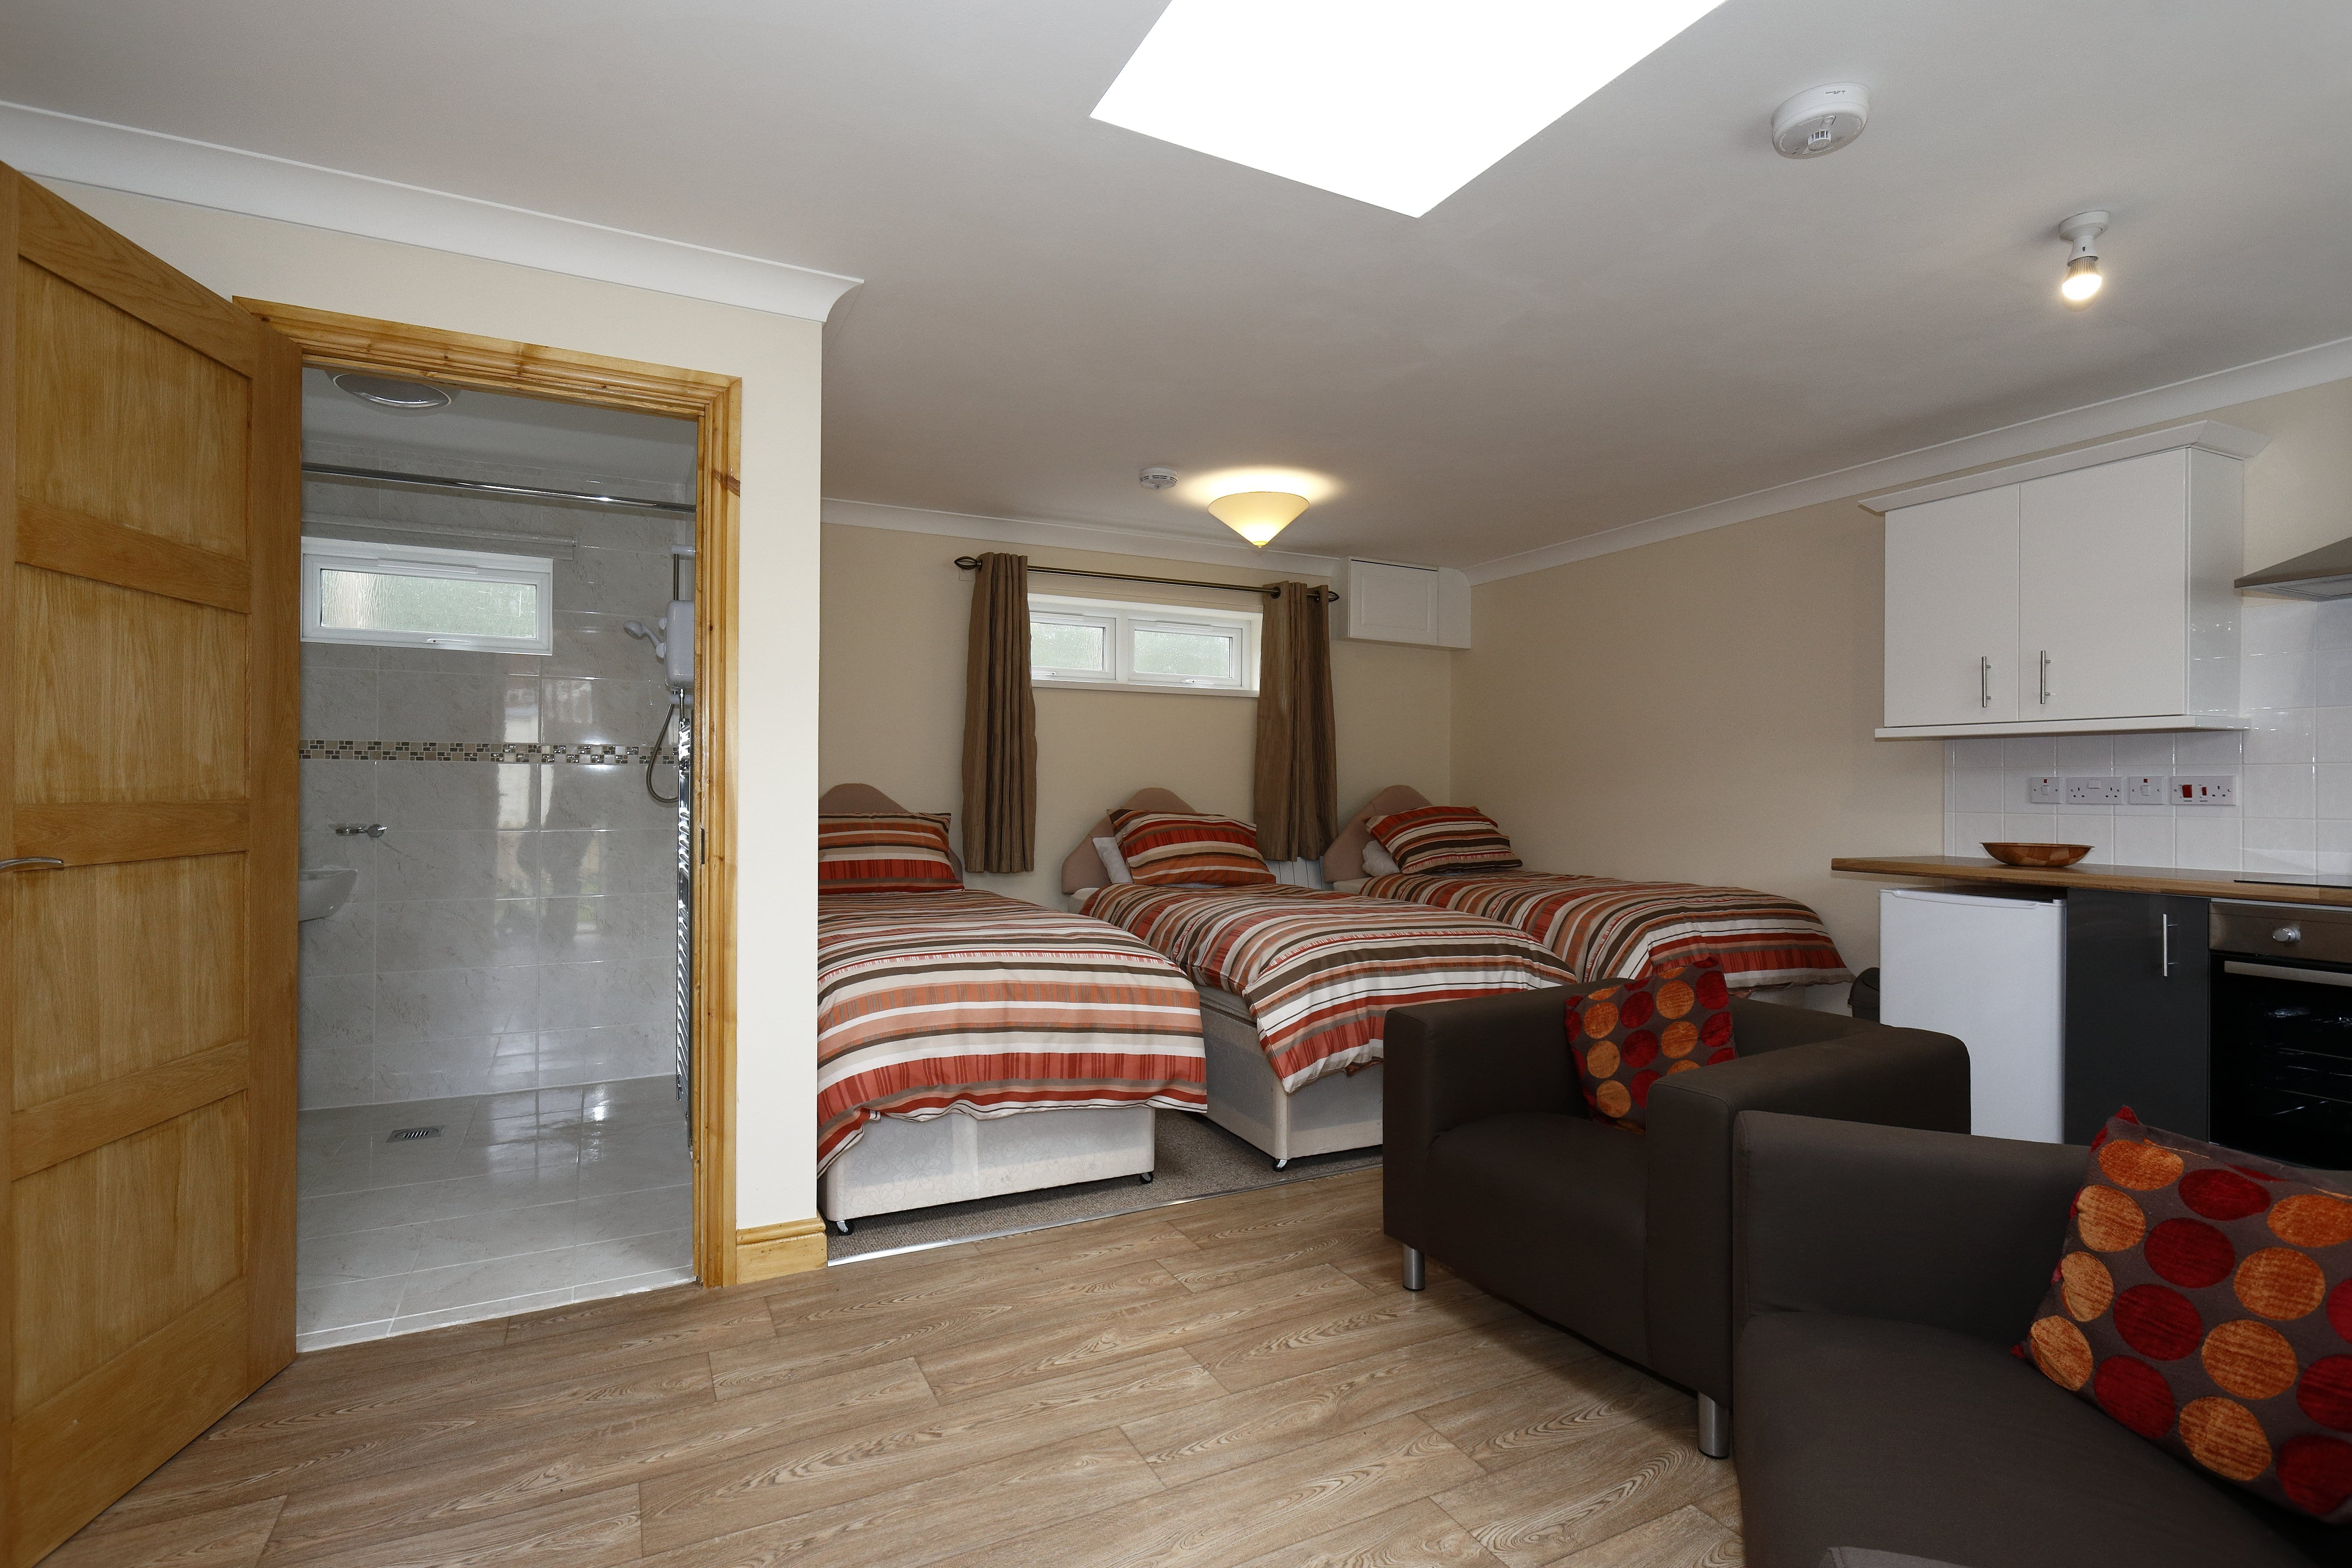 The Castle Inn self catering apartments